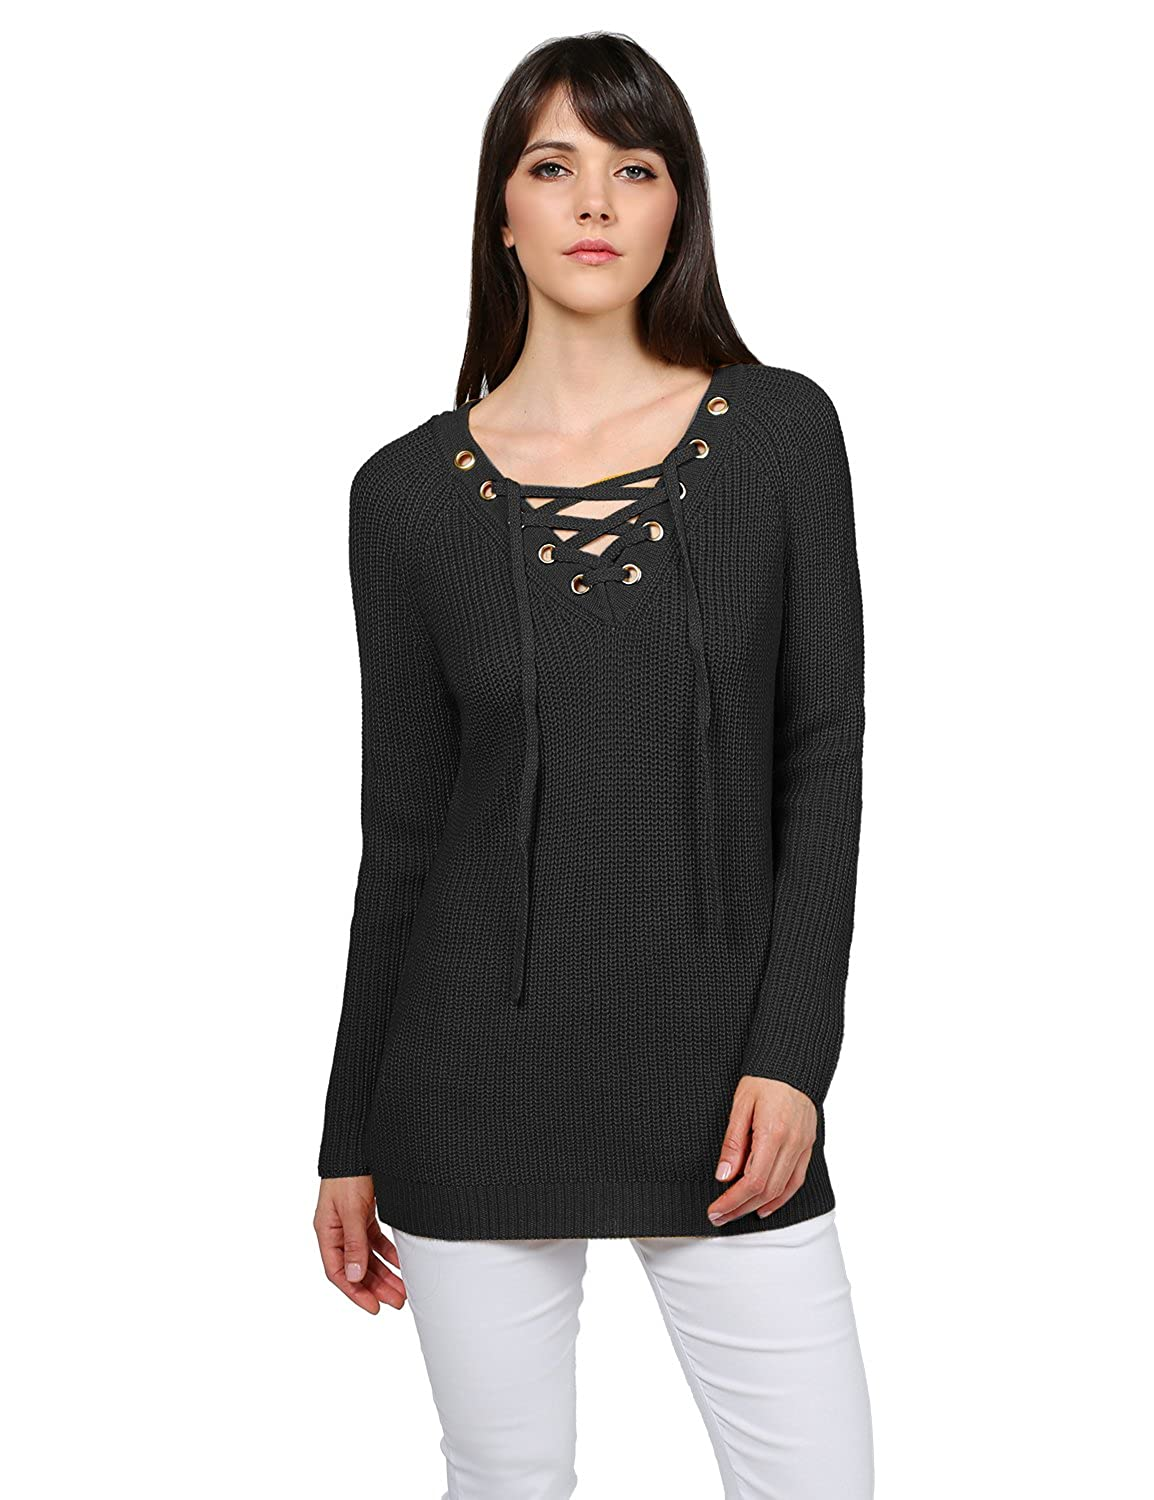 cd4c358084 Made by Emma MBE Women s Casual Solid Raglan Long Sleeve Lace up Front V-Neck  Knit Sweater at Amazon Women s Clothing store